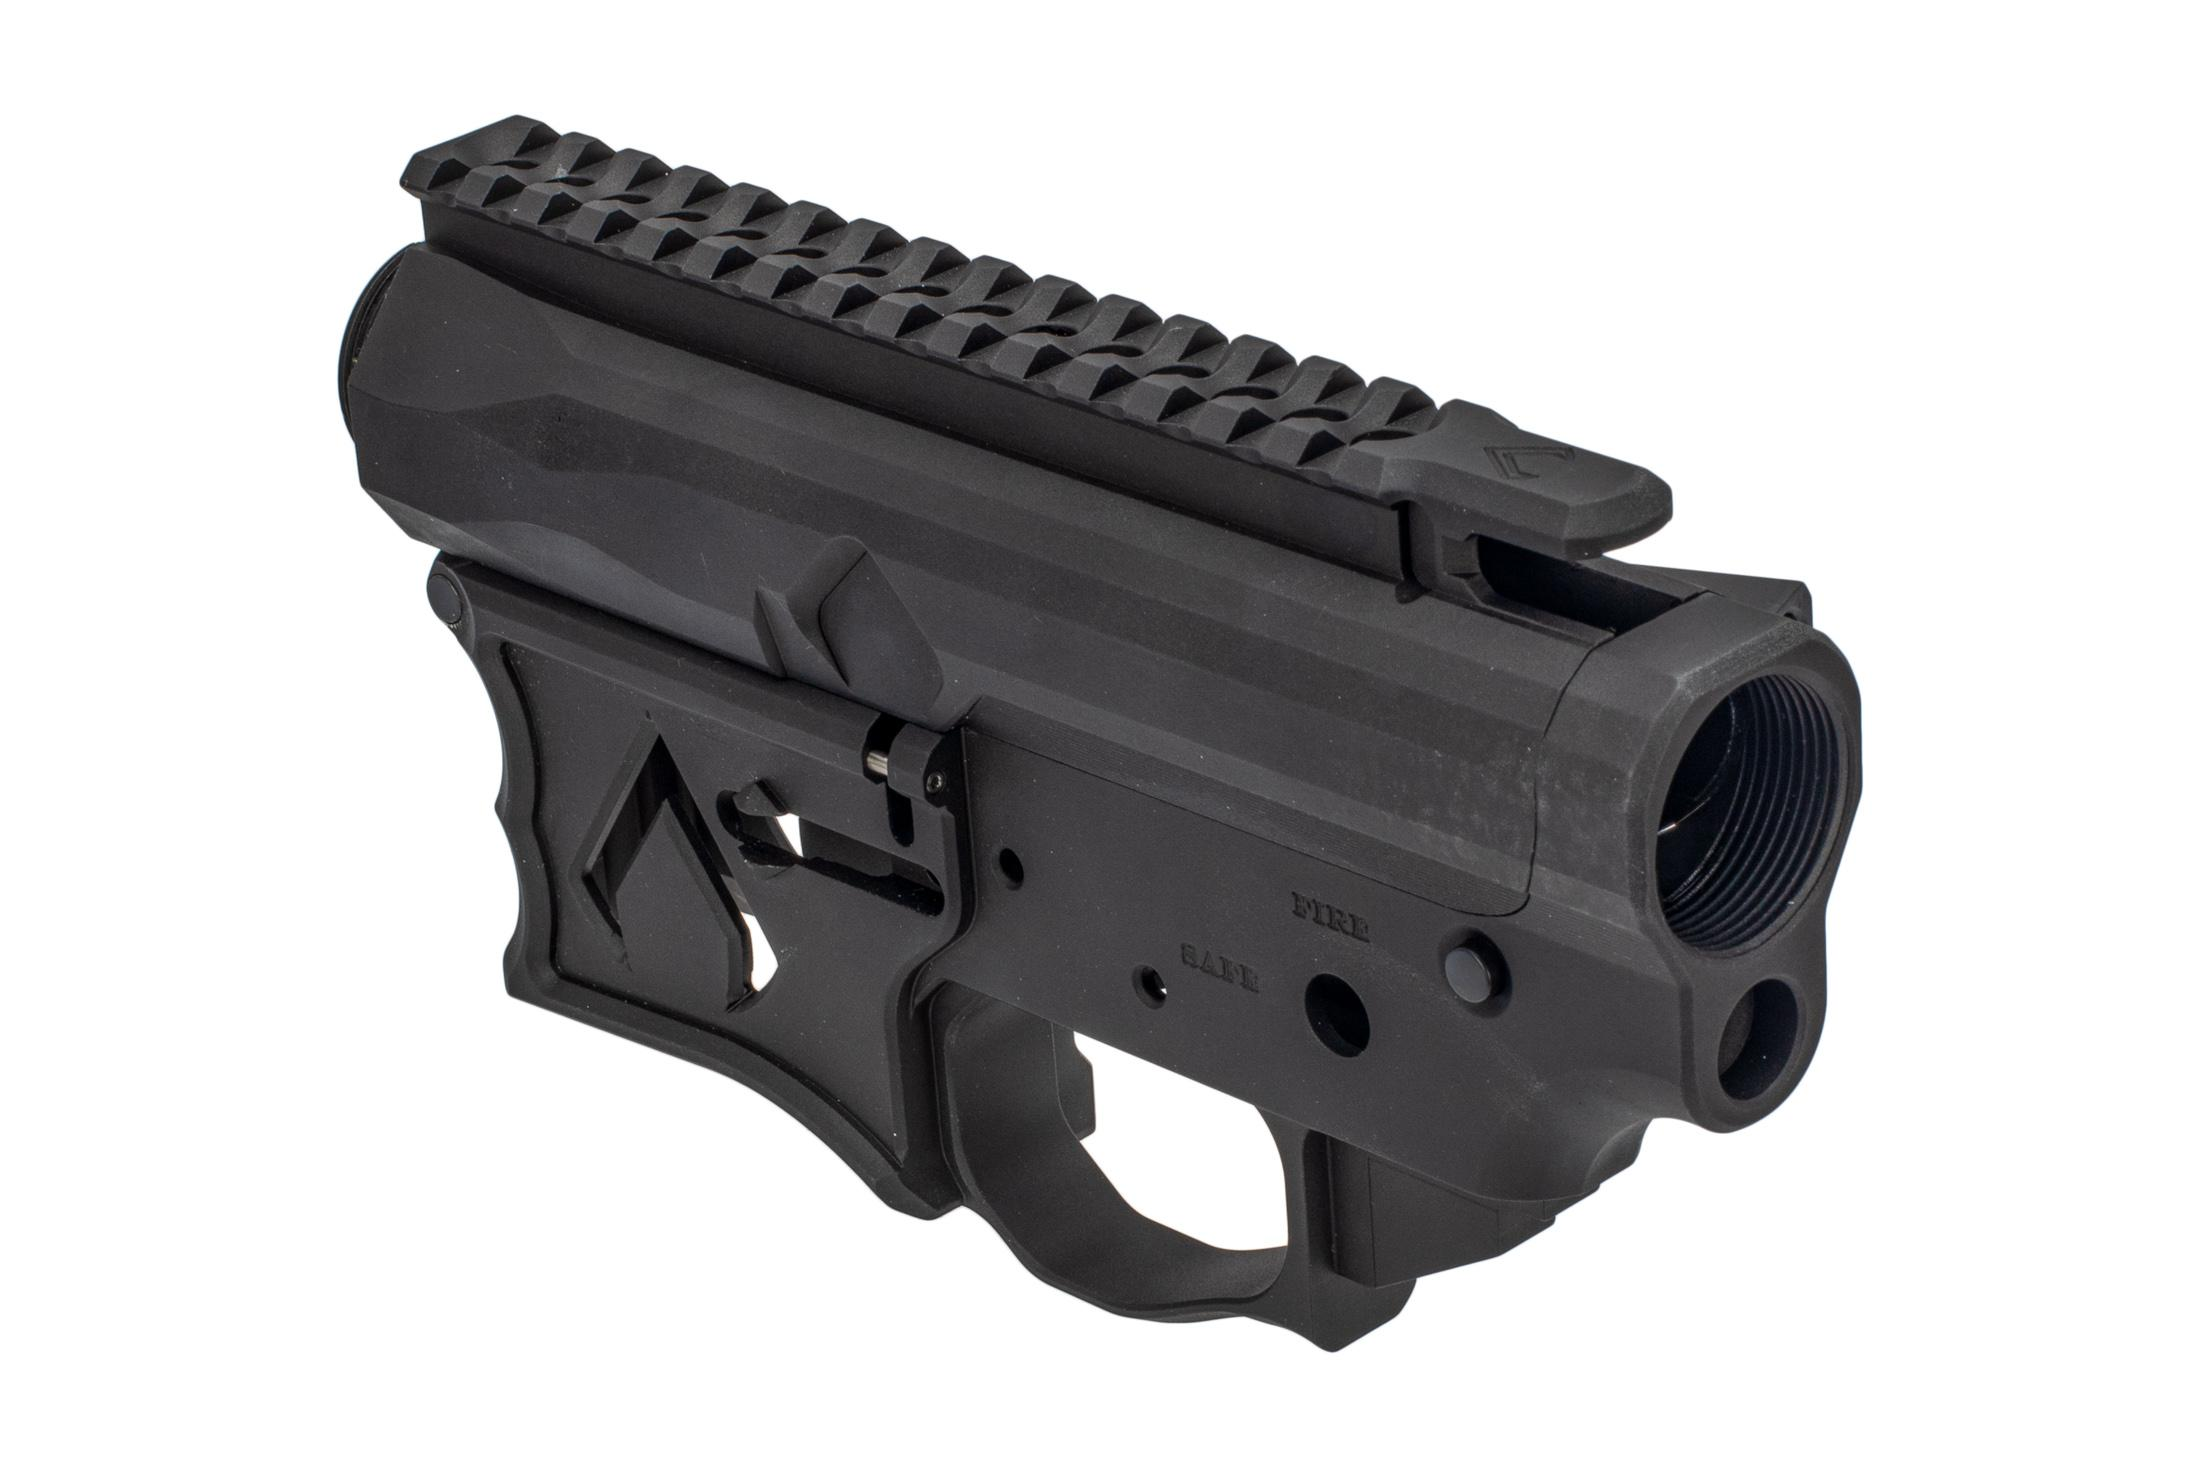 F1 Firearms Billet AR15 Receiver Set features a scalloped picatinny top rail